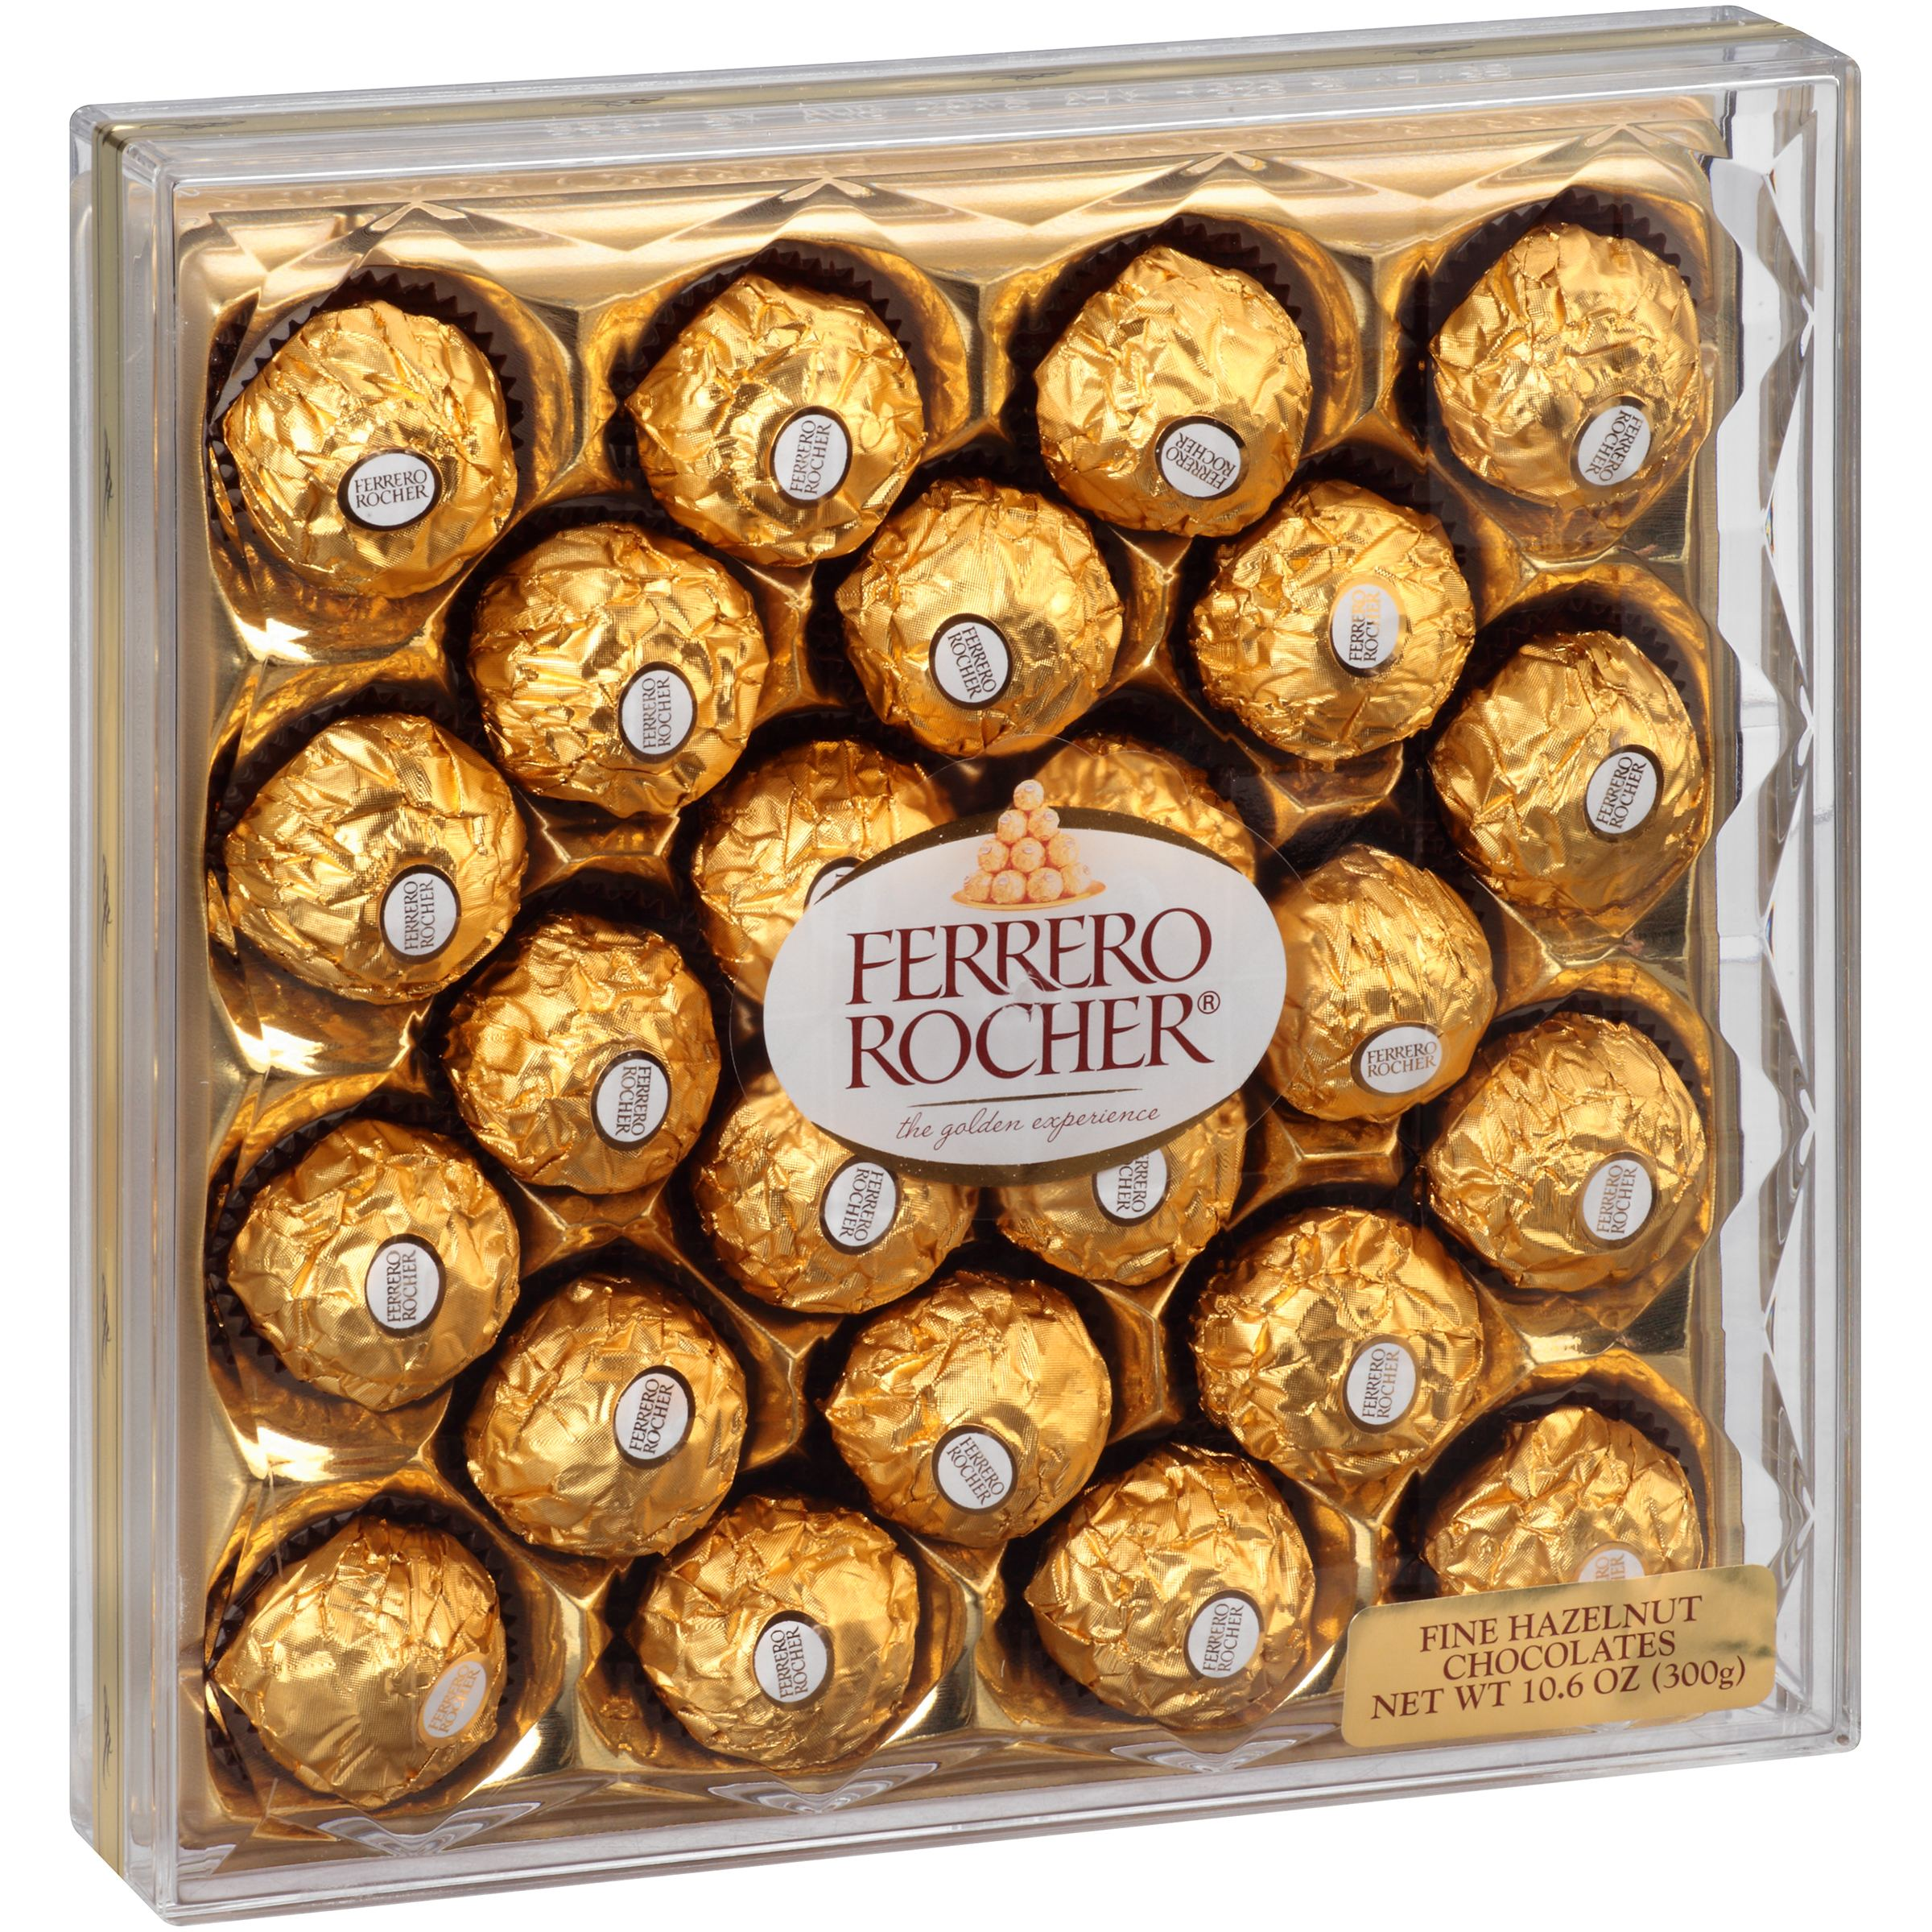 Ferrero Rocher Fine Hazelnut Chocolates 10.6 oz. Pack by Ferrero U.S.A., Inc.